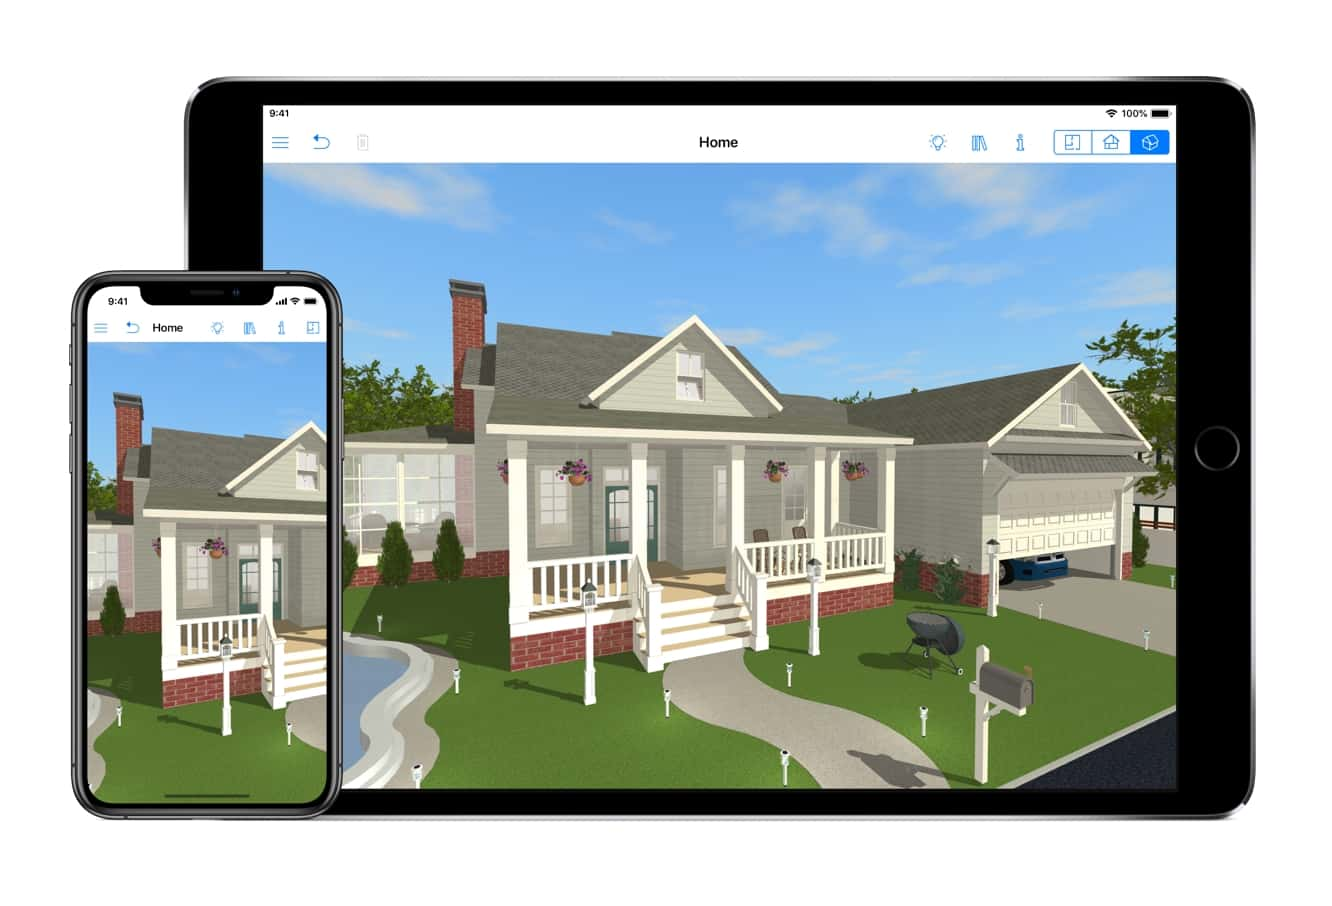 BeLight releases Live Home 3D for iOS